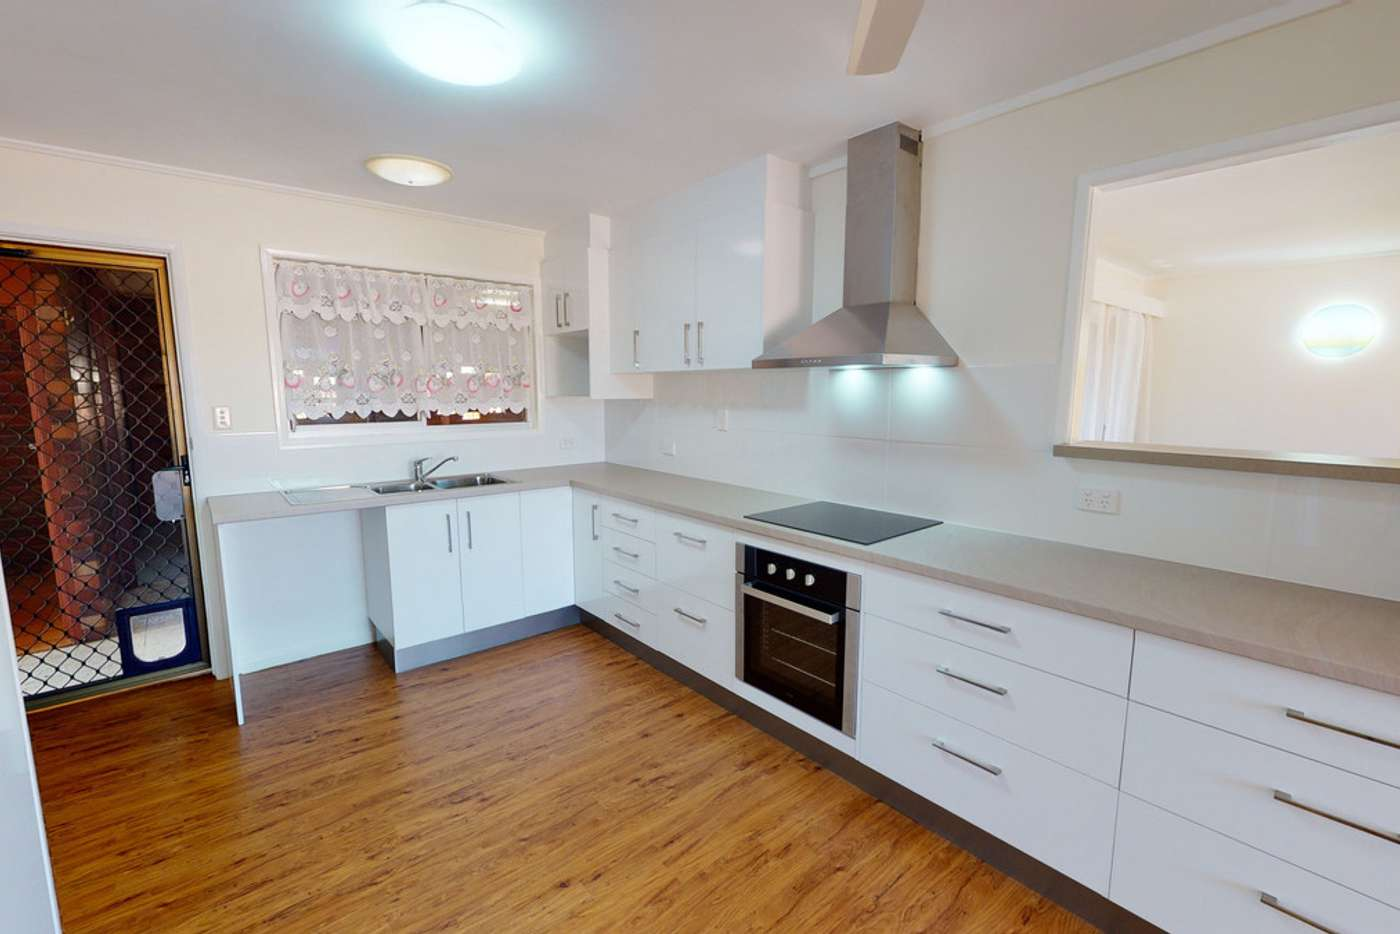 Sixth view of Homely house listing, 8 Wareham Street, Aitkenvale QLD 4814